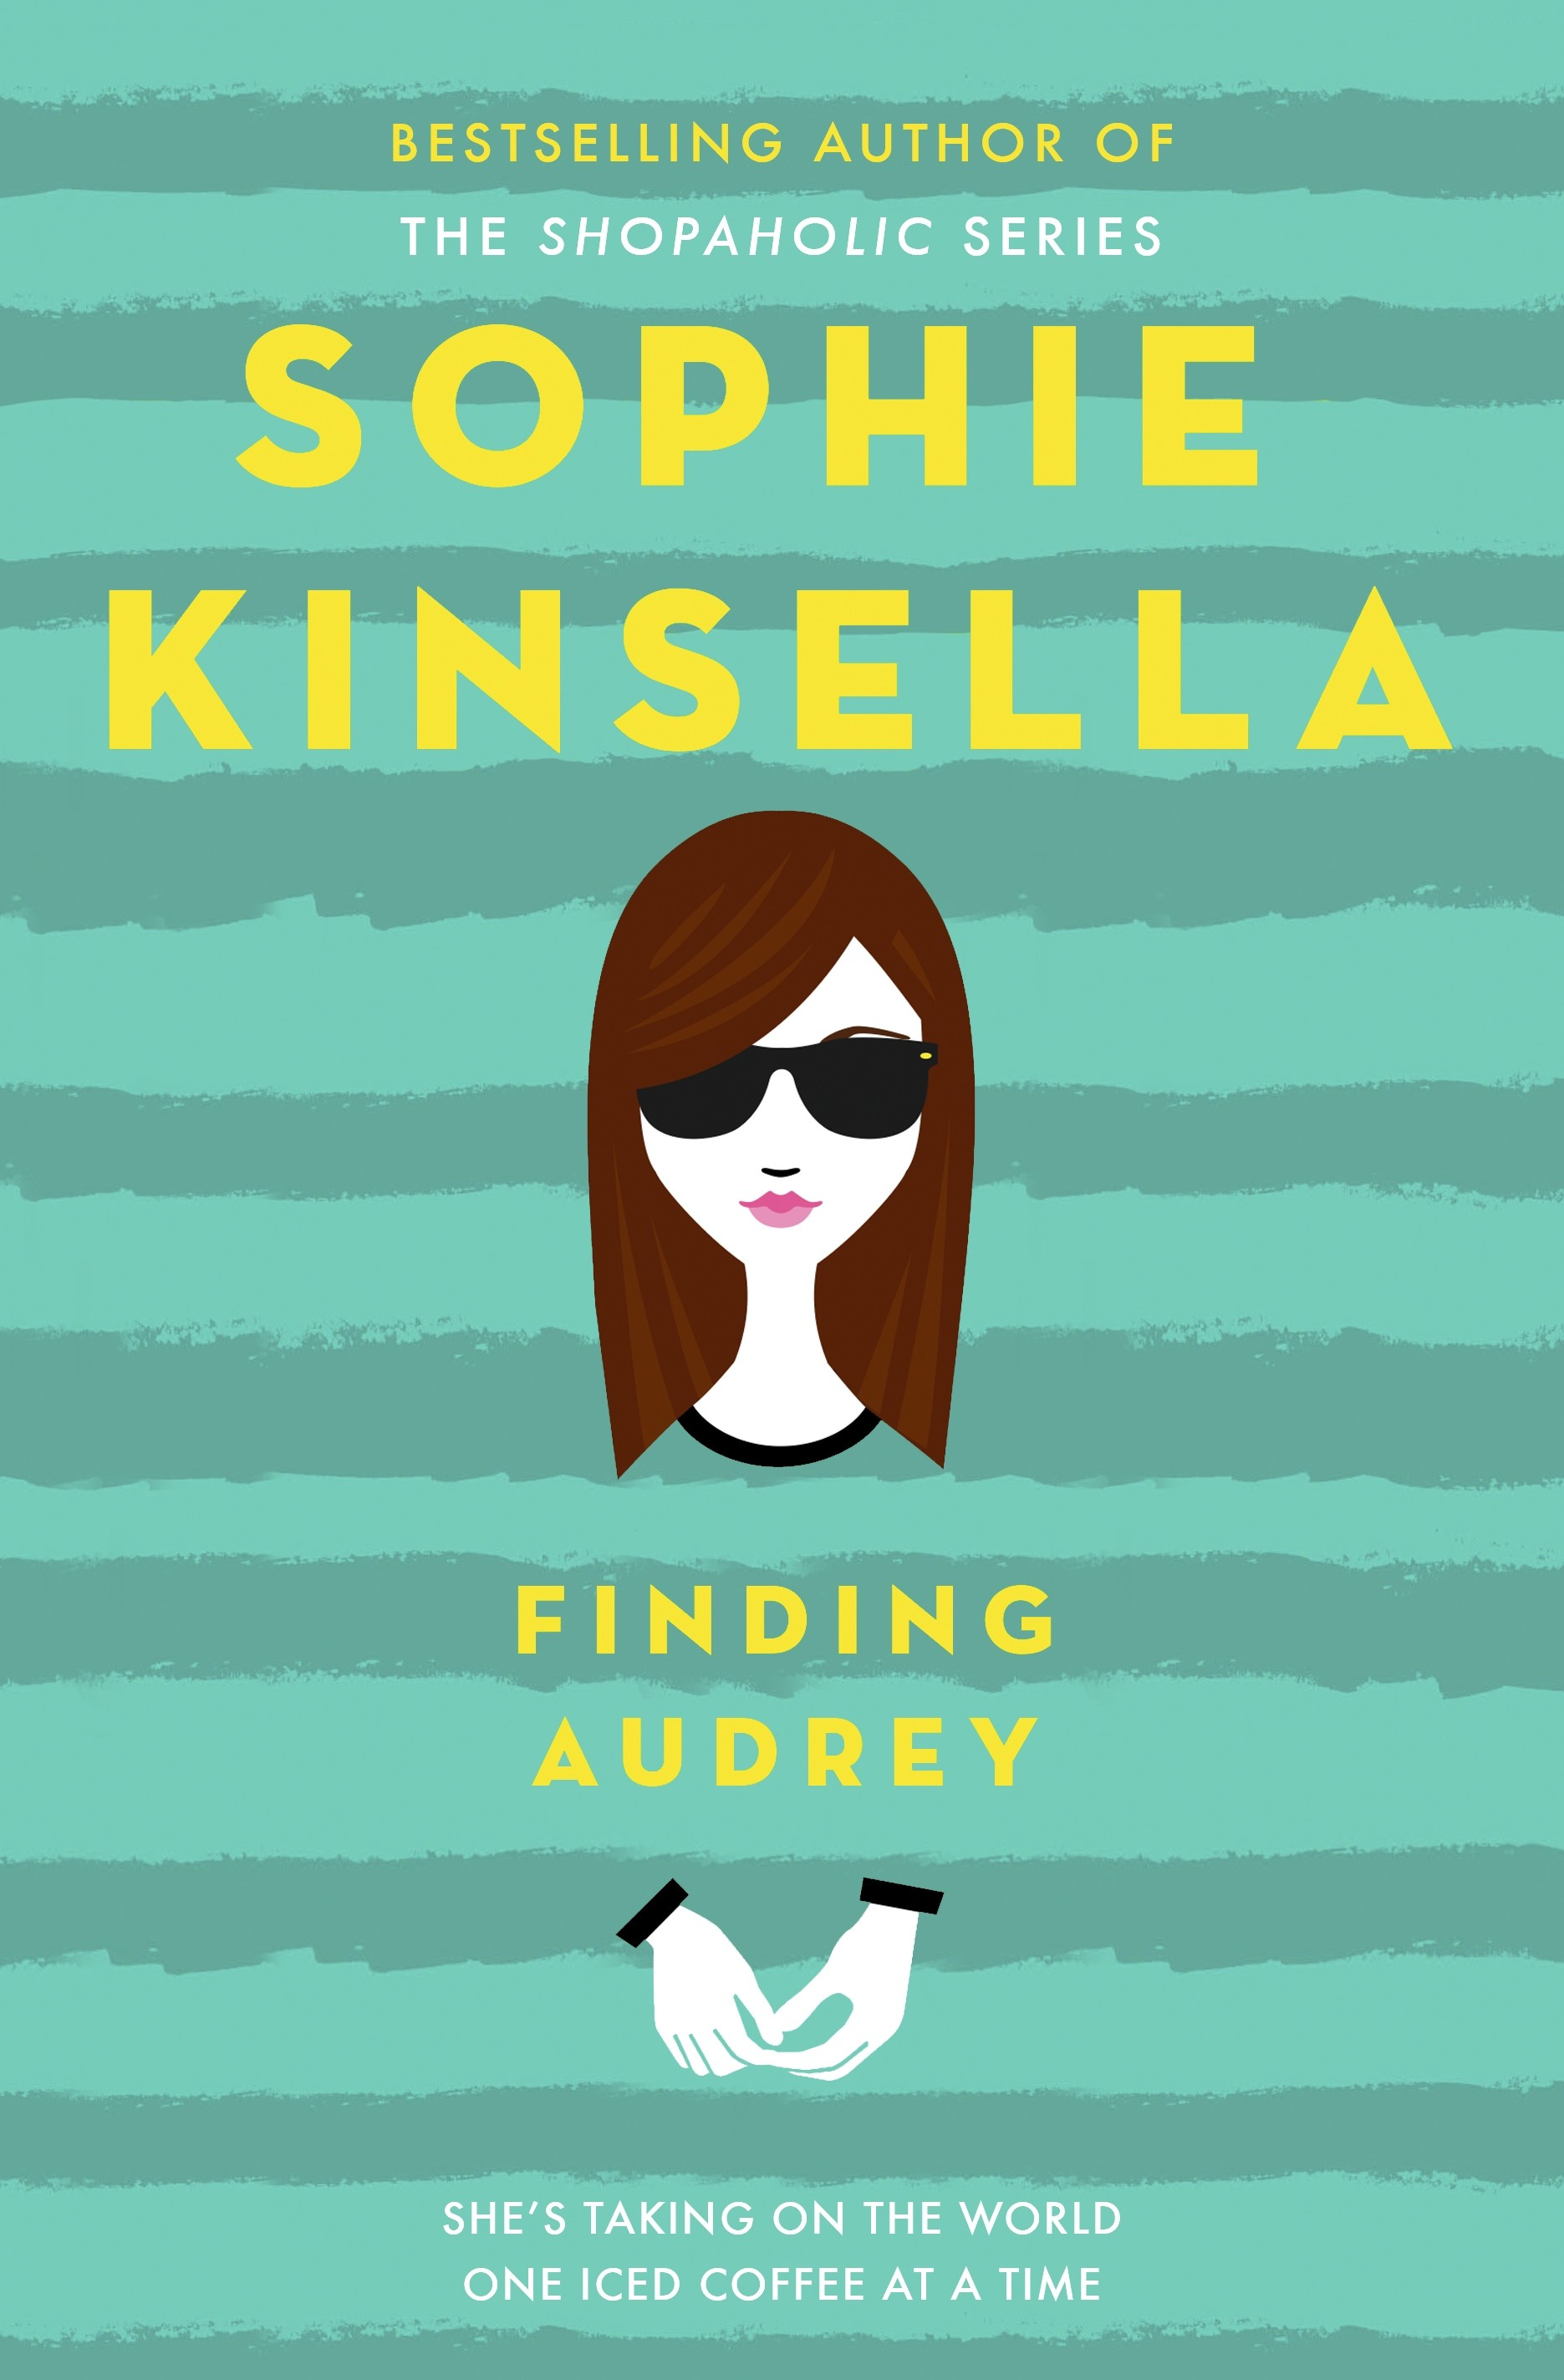 Cover Art for Finding Audrey, ISBN: 9780857534590